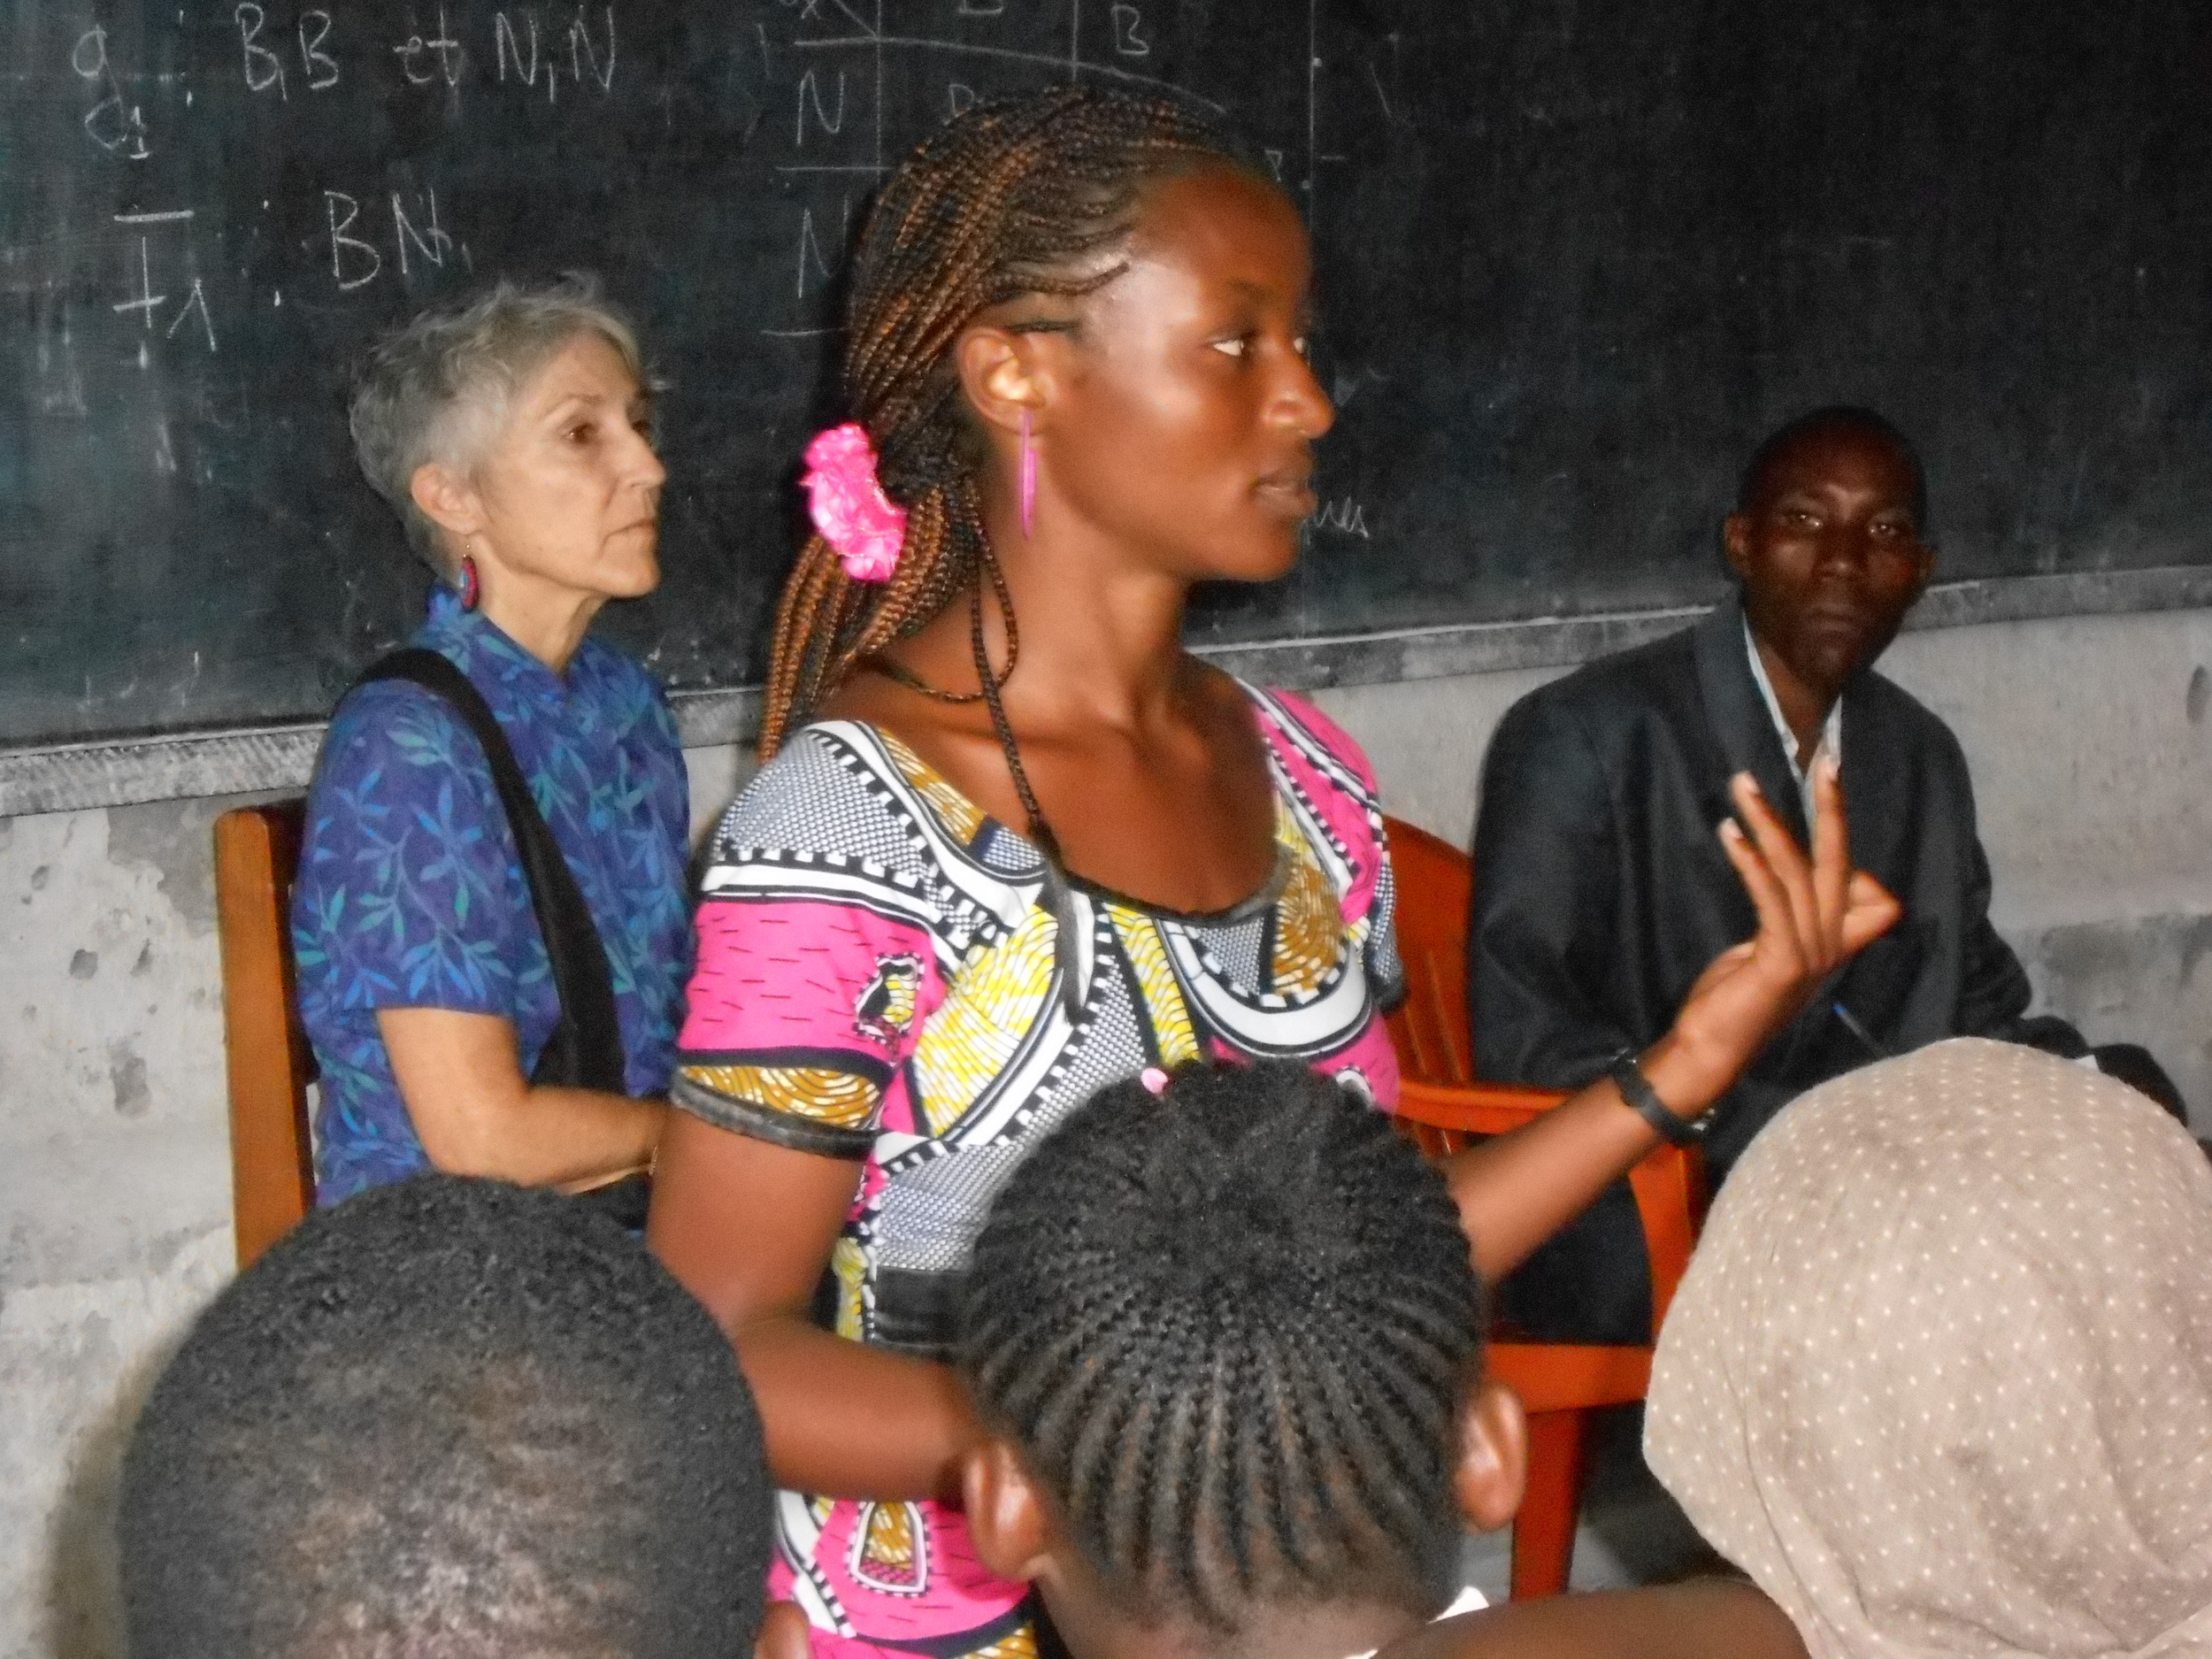 ACT for Congo's Executive Director Judy Anderson watches Peer Educators lead a reproductive health seminar at the local high school in Goma, DR Congo.